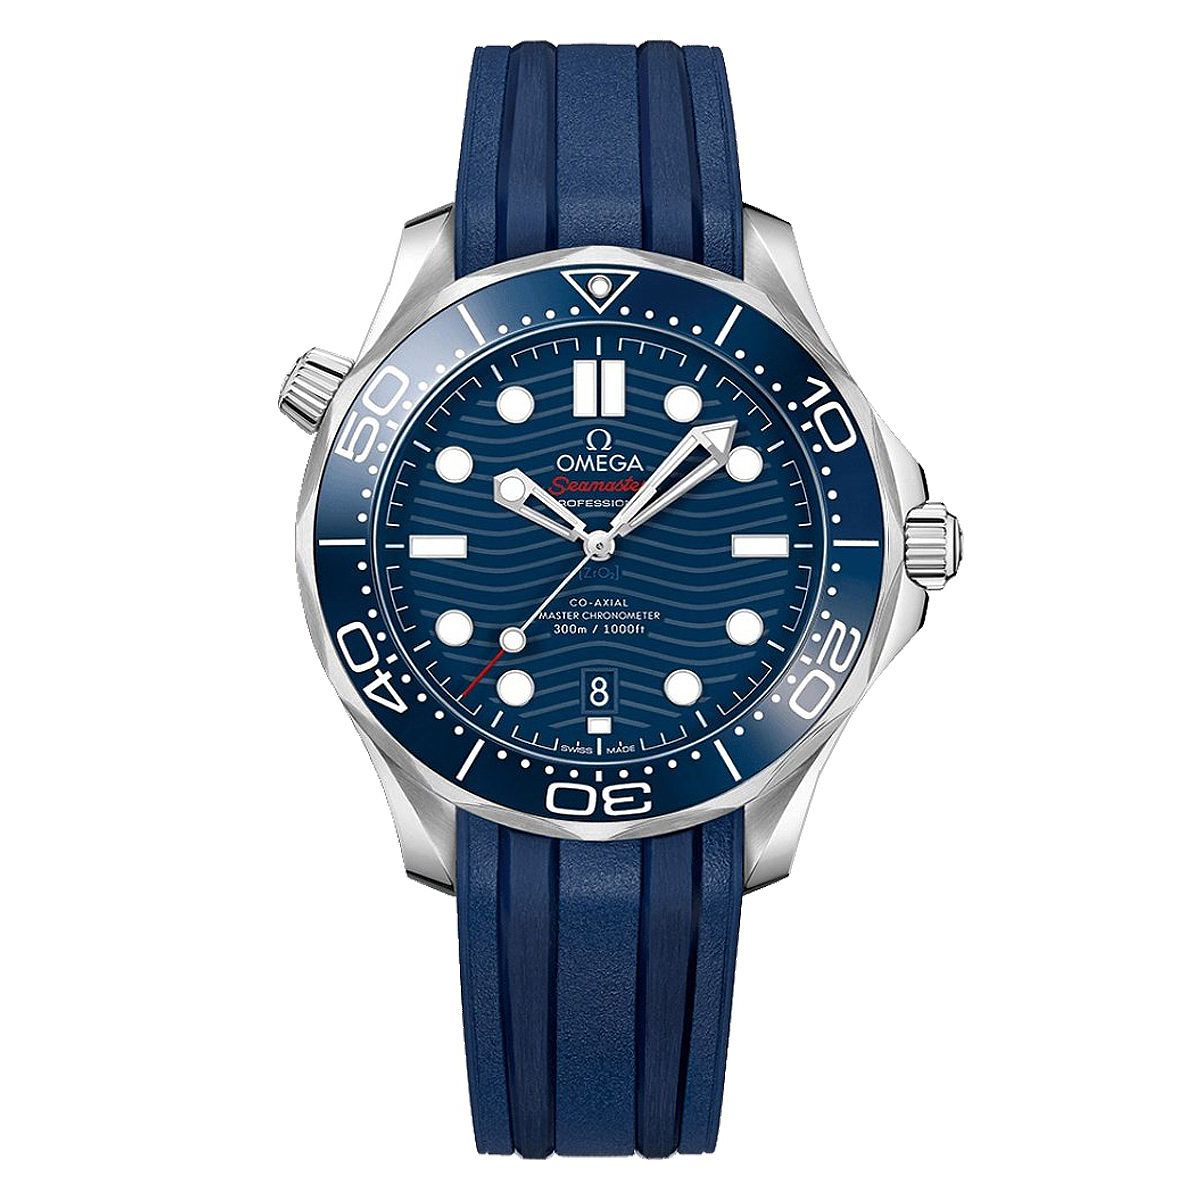 Omega Seamaster Diver Men's Blue Rubber Strap Watch - Product number 9178104